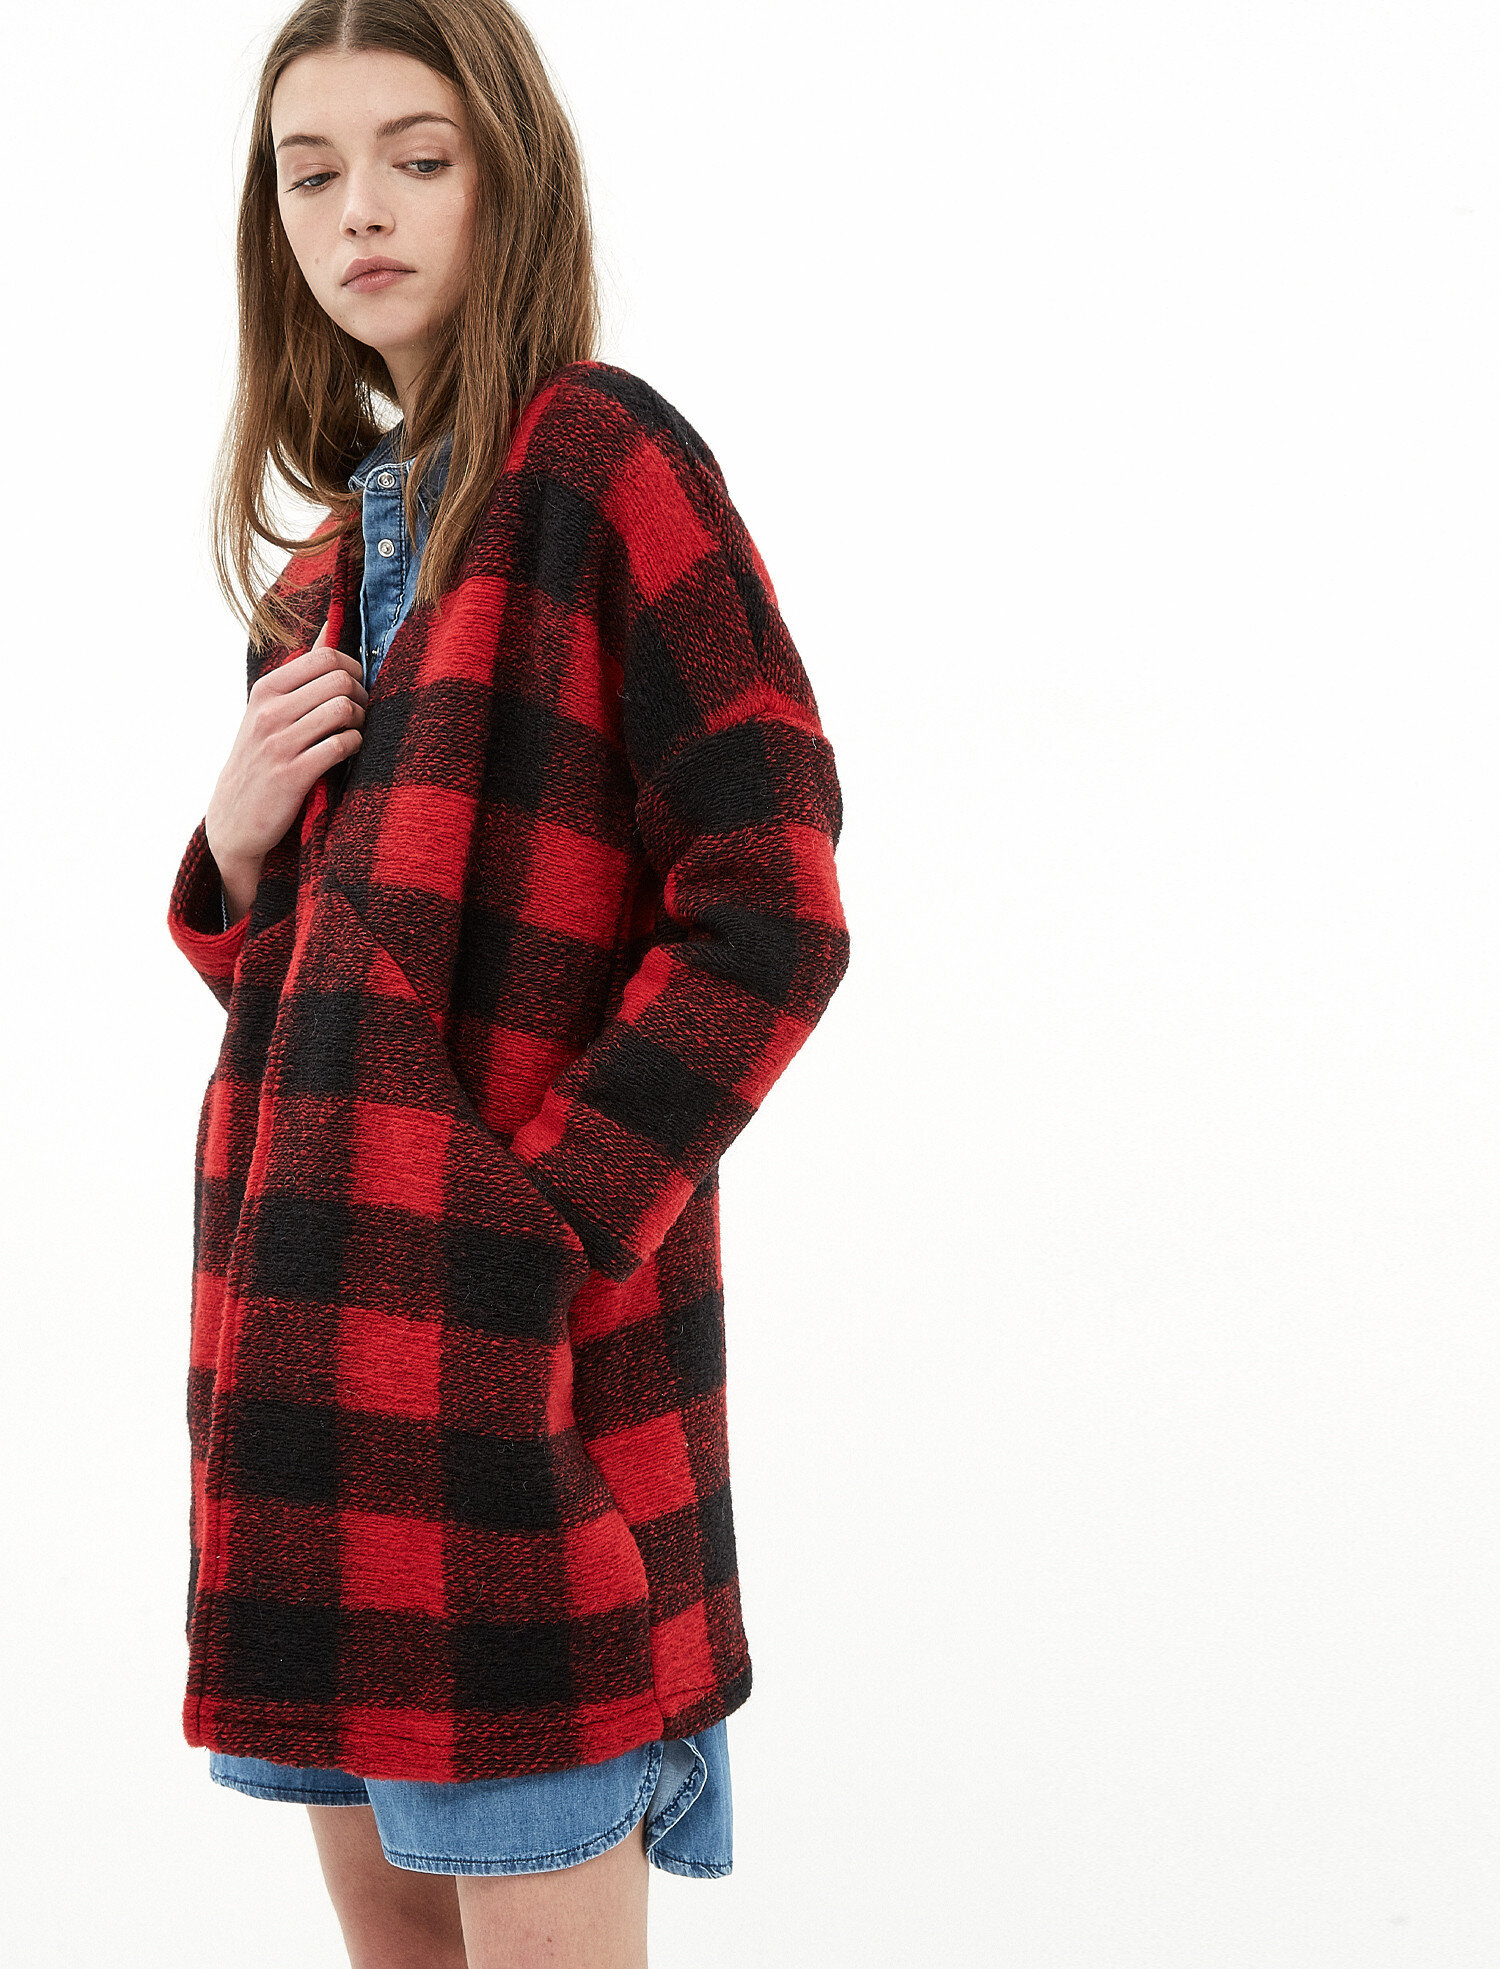 Red Check Women Check Coat 7KAK08007GW47R | Koton